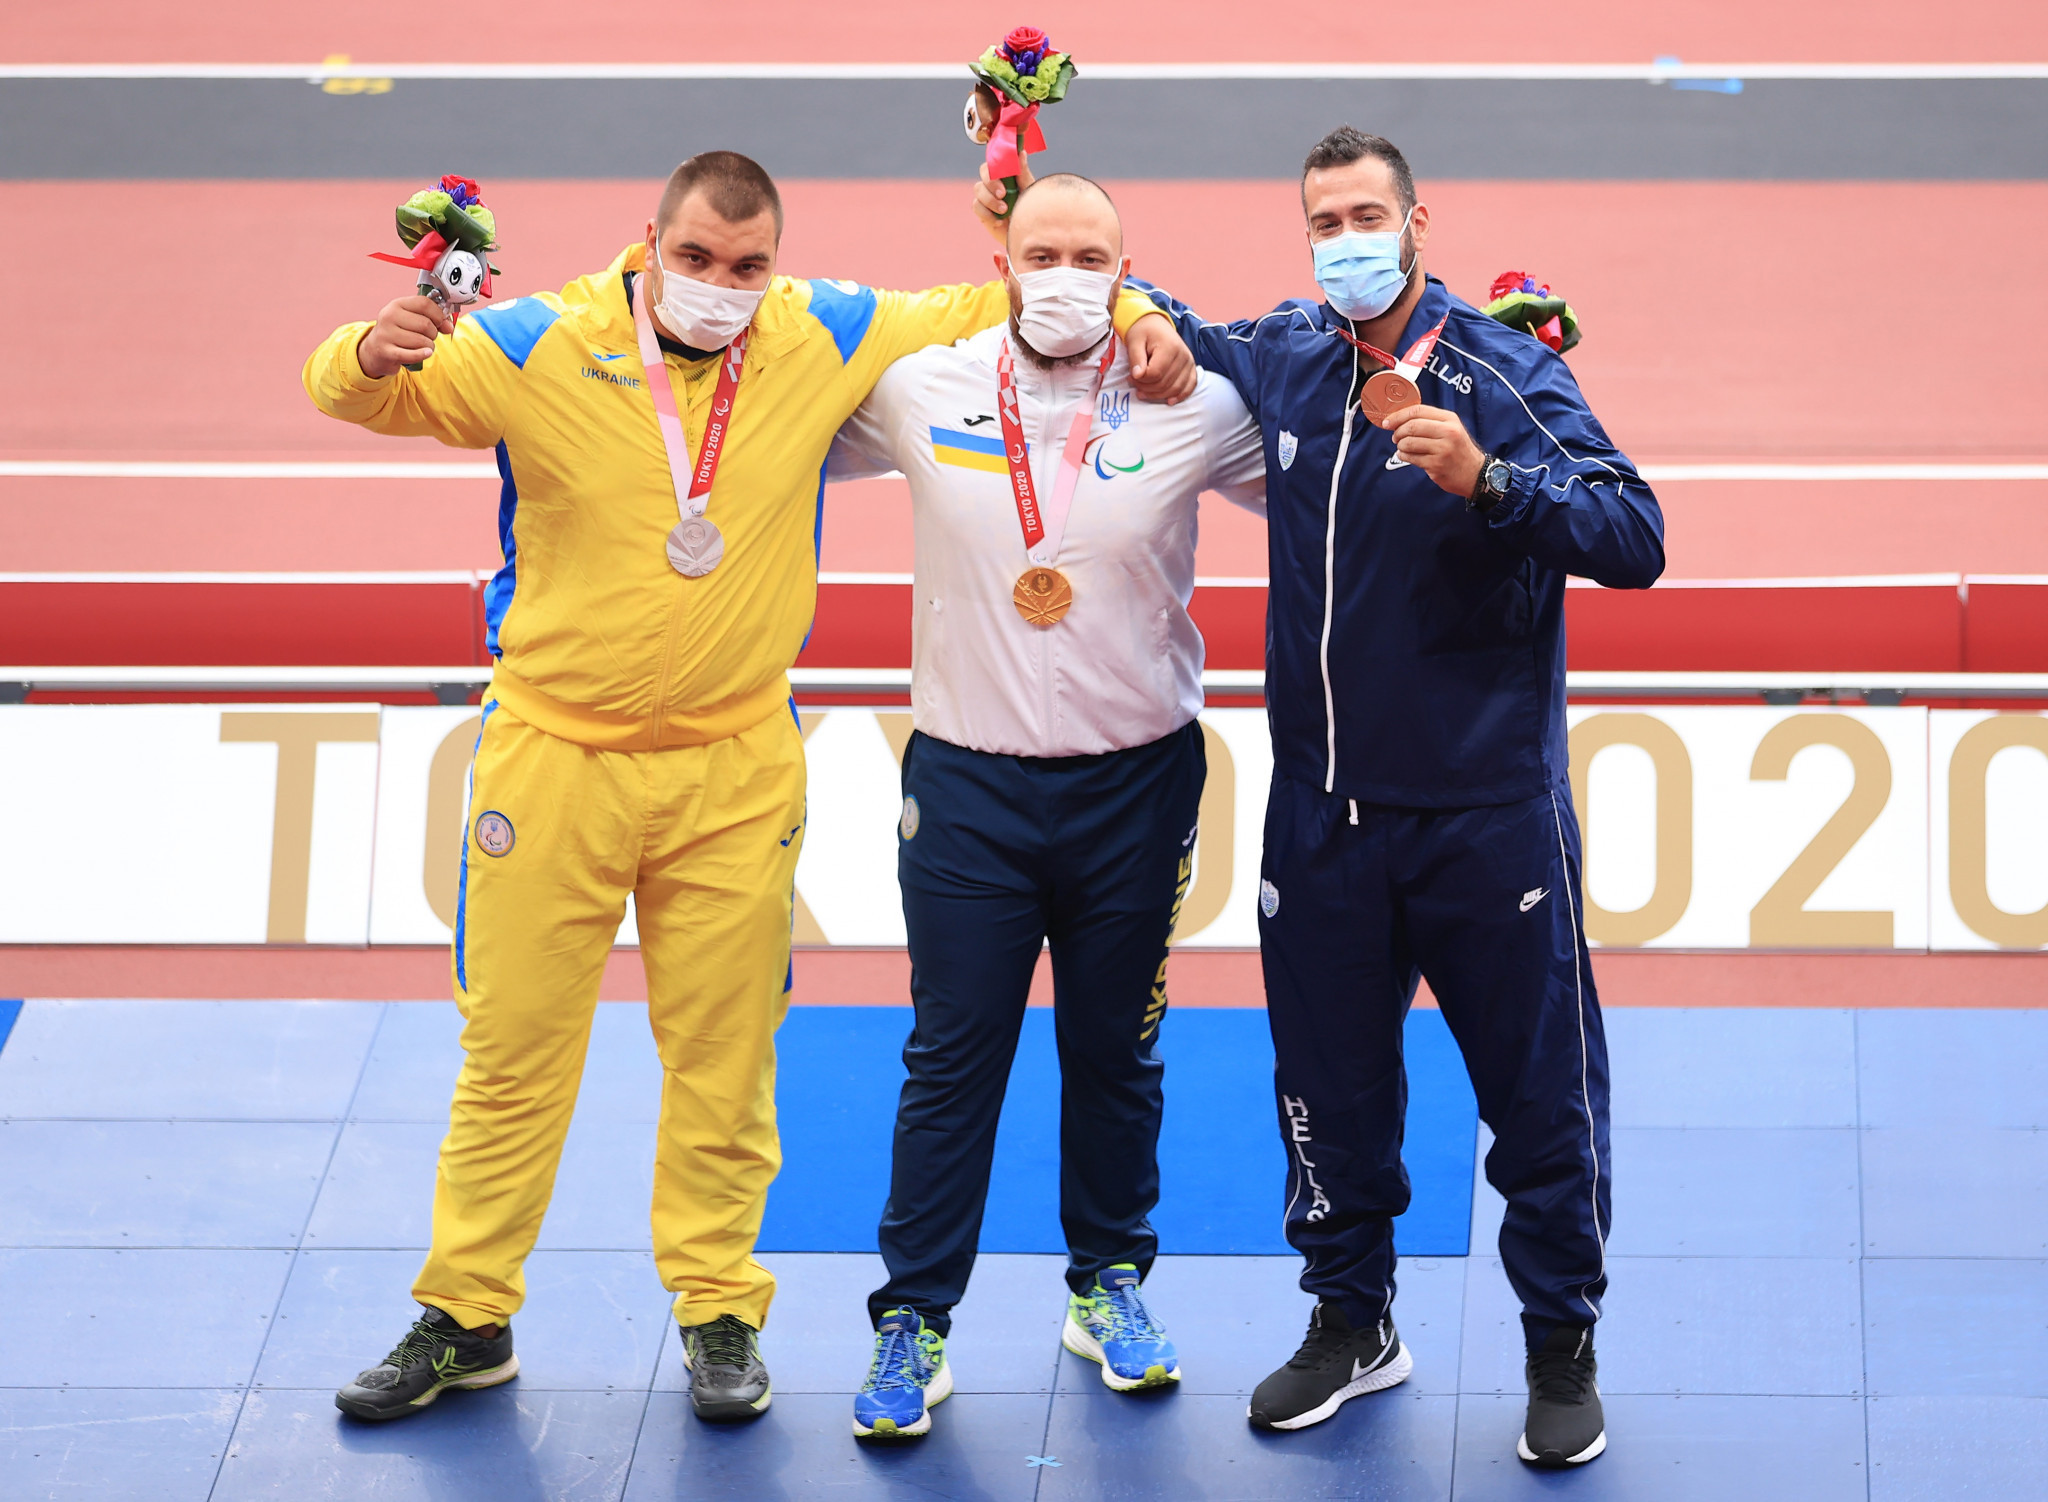 """IPC slams """"very abusive"""" social media comments over Ziyad being stripped of gold"""